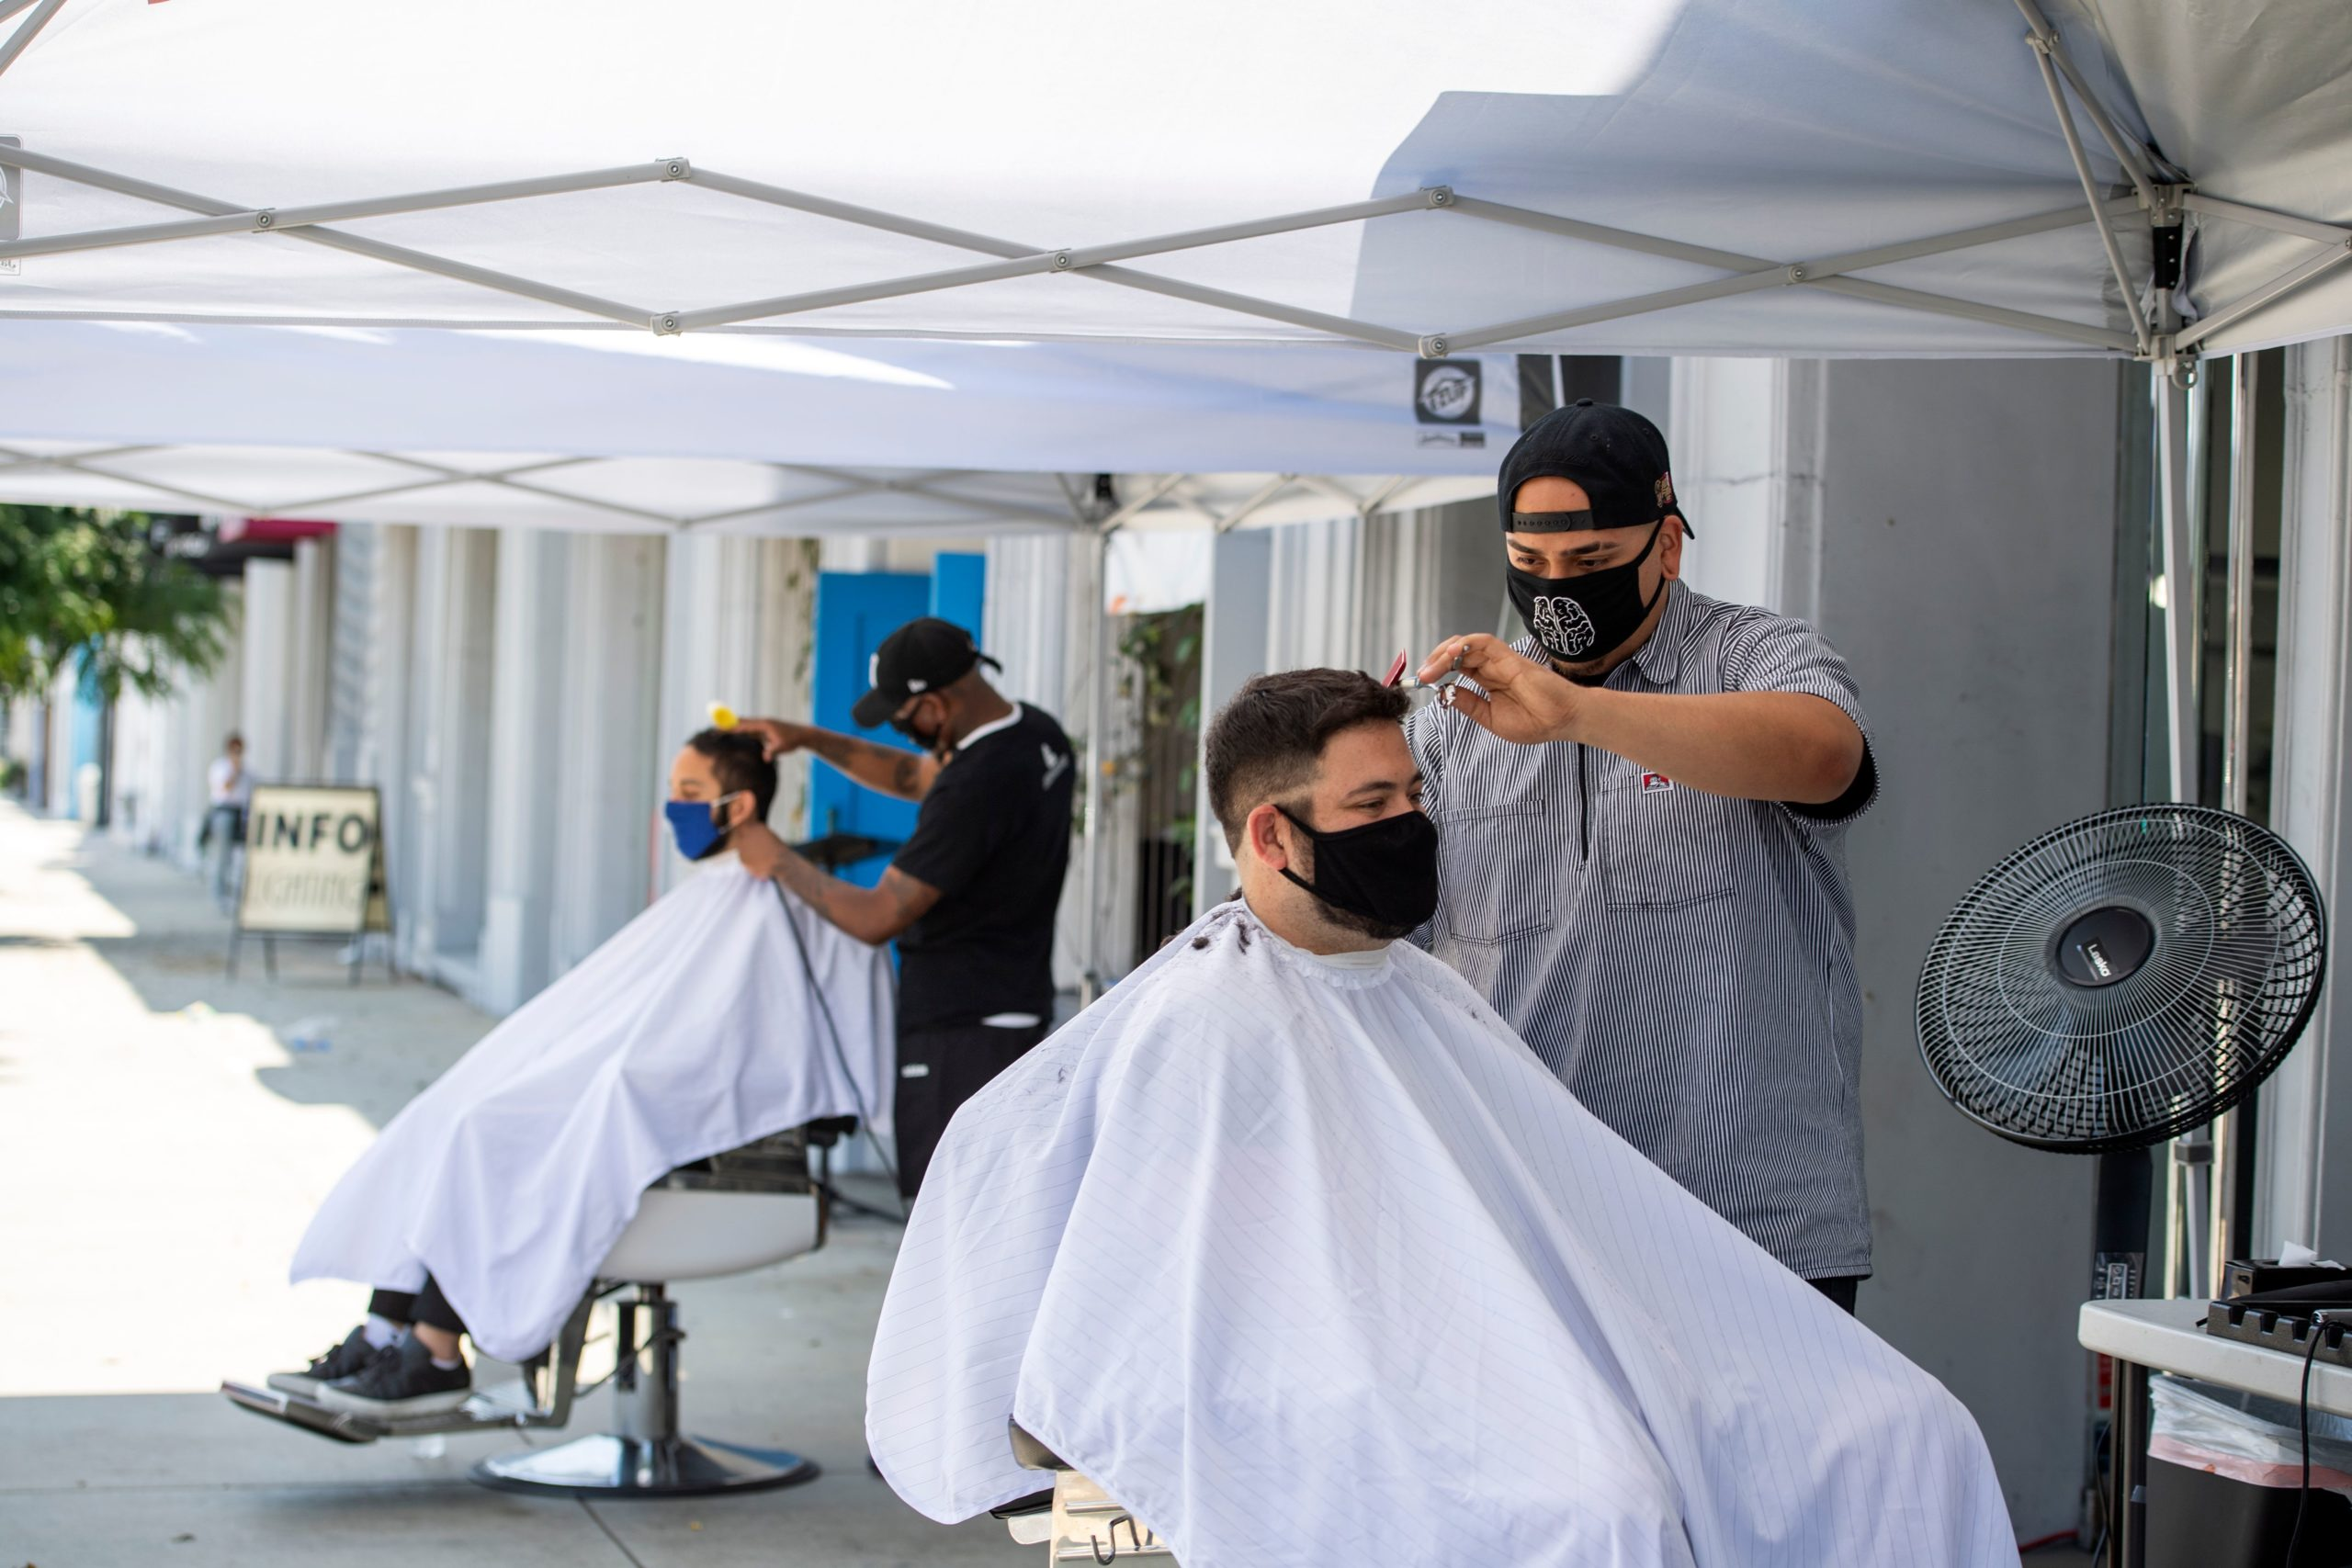 Stylists from a Los Angeles, California barbershop cut clients' hair on Aug. 4. (Valerie Macon/AFP via Getty Images)